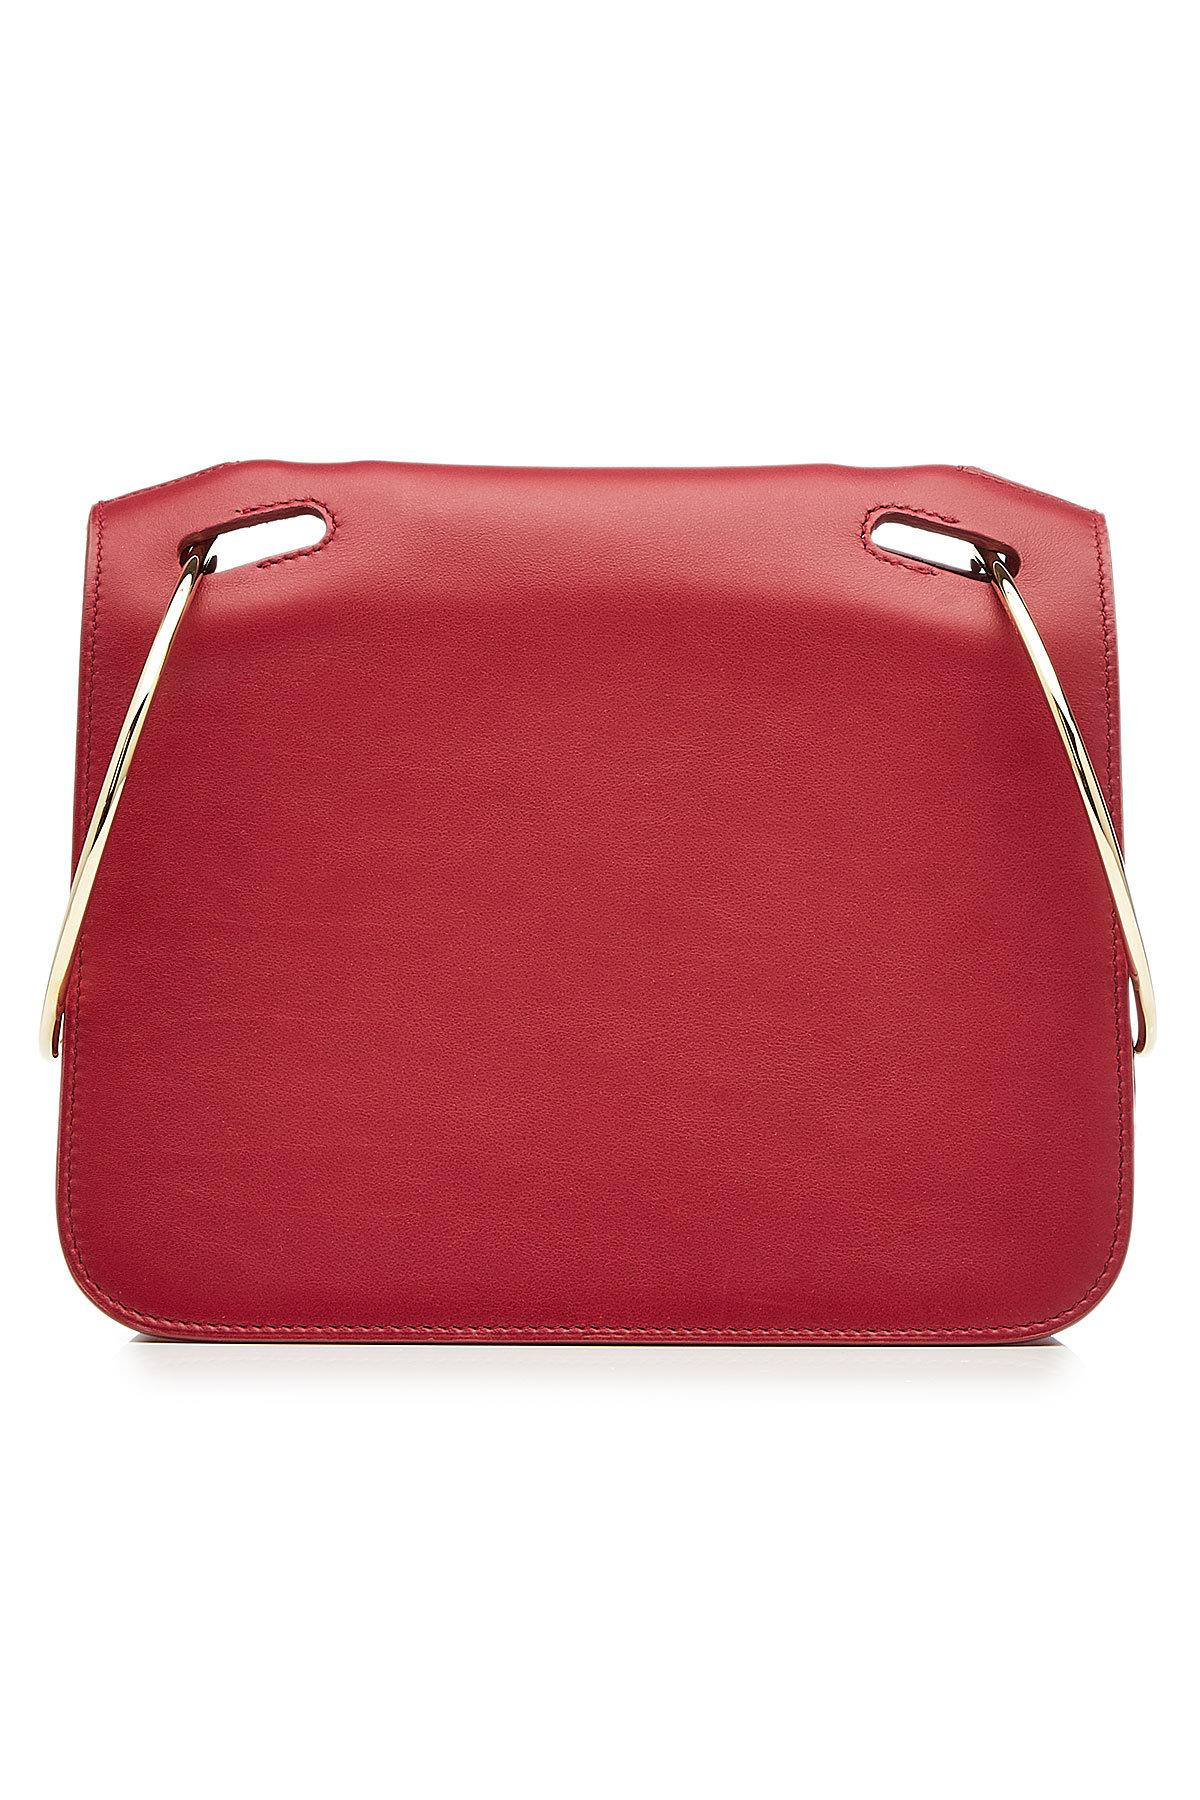 Roksanda Leather Shoulder Bag In Red